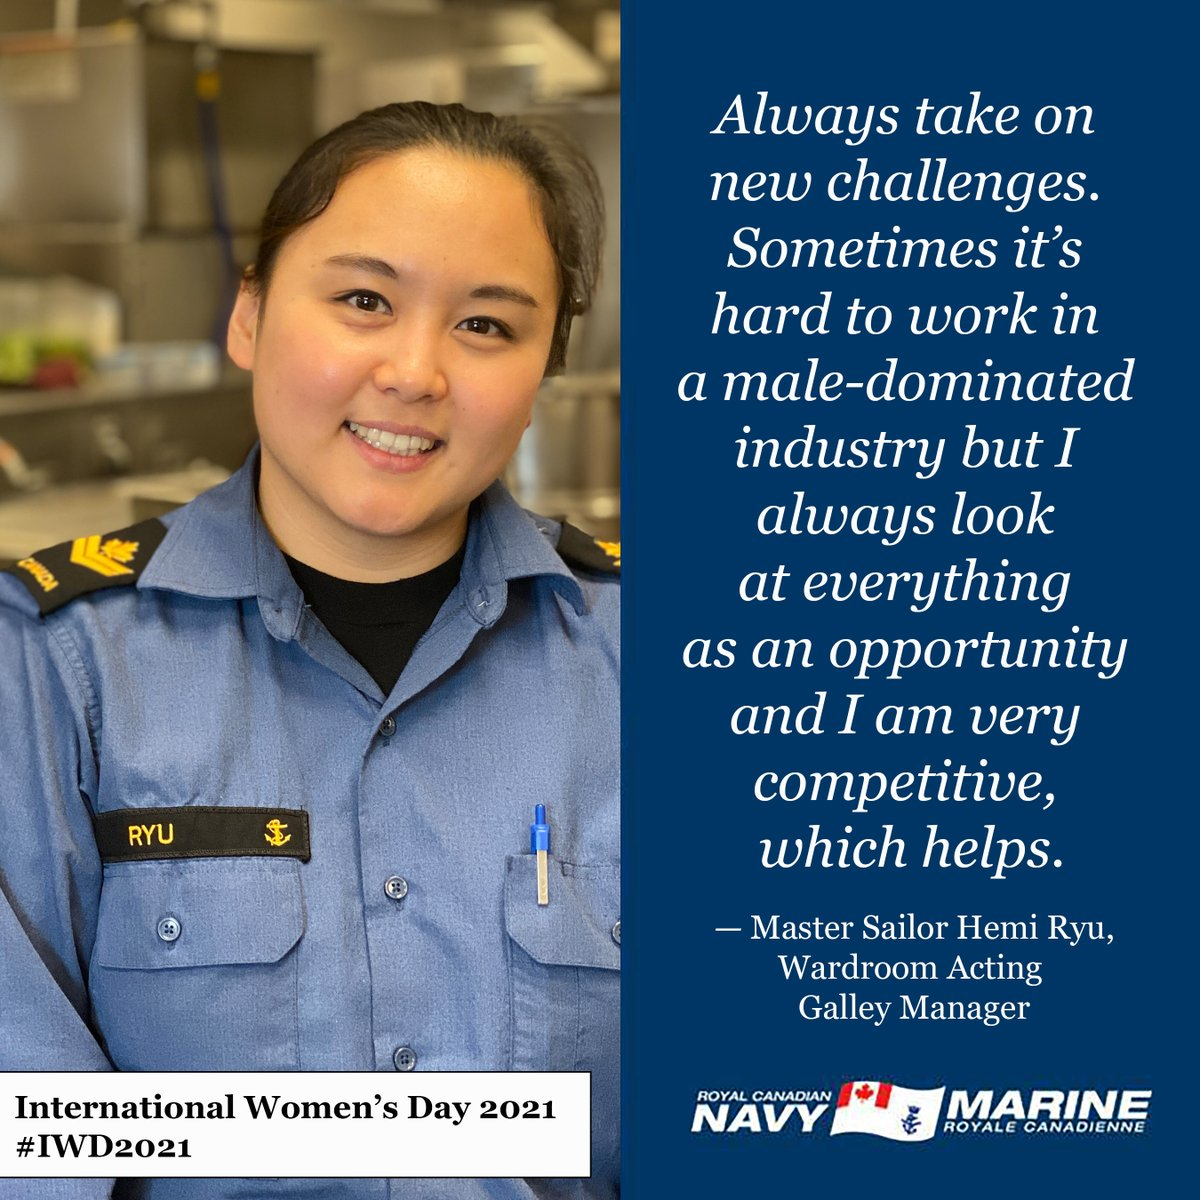 As we mark #InternationalWomensDay, we're highlighting some of the amazing women on CFB Esquimalt's Defence Team. For more on Master Sailor Hemi Ryu, check out the latest issue of @Lookout_news. #IWD2021 #CFBEsqSupports!